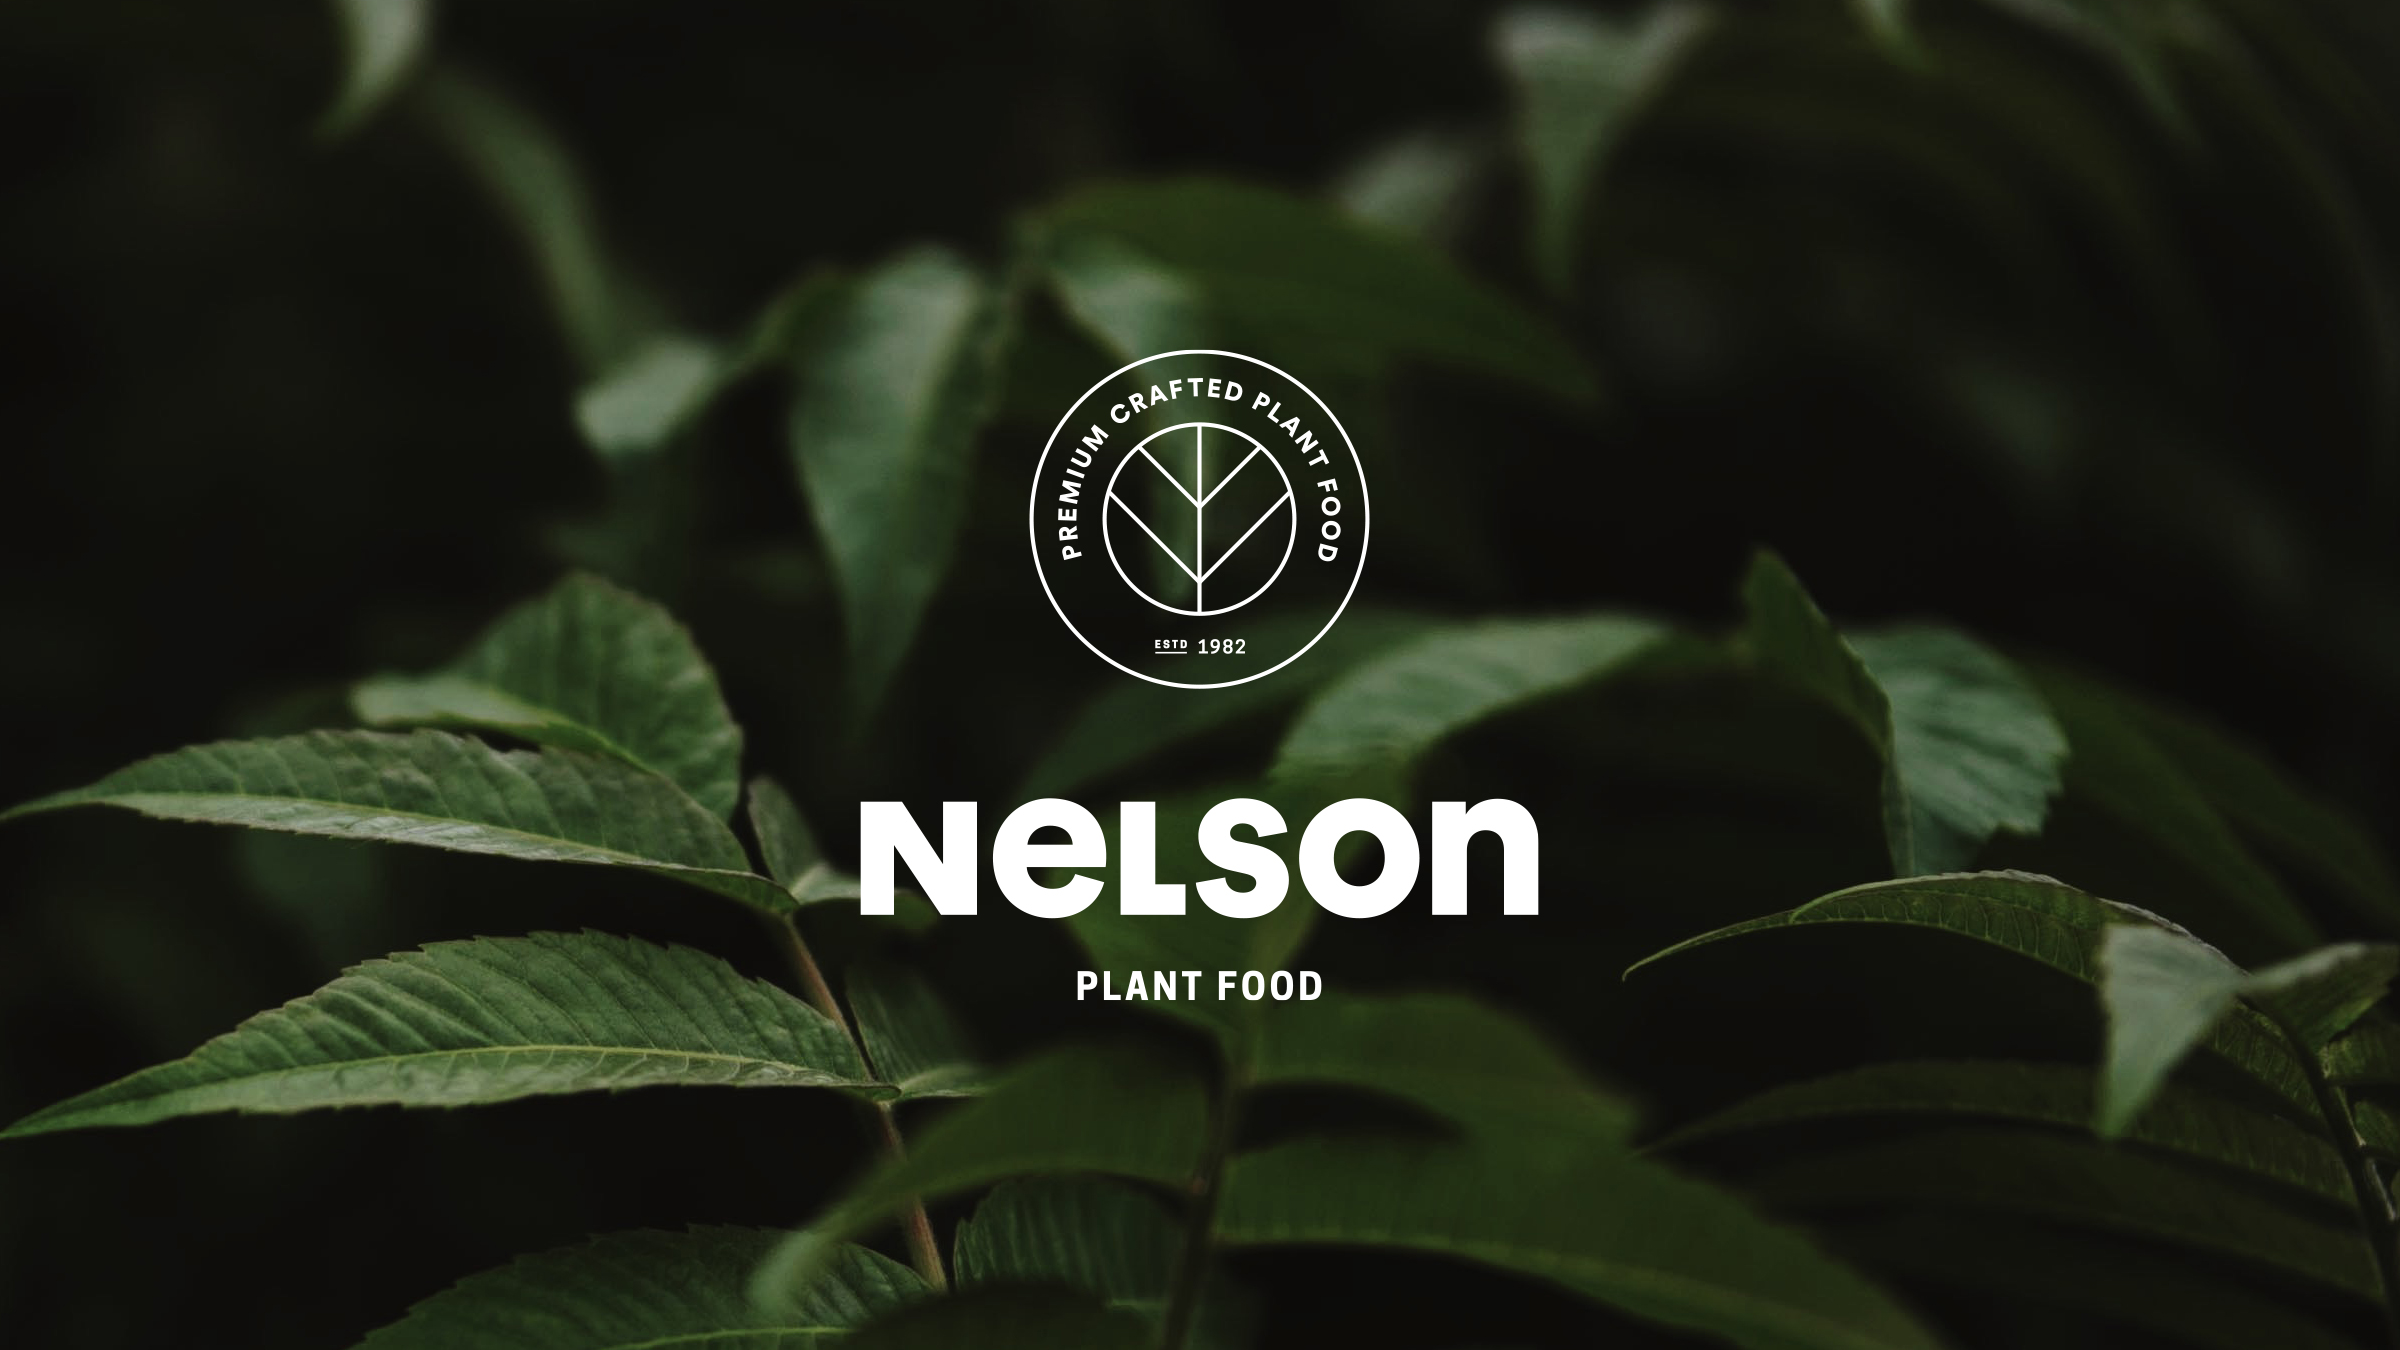 Nelson Plant Food brand logo preview image